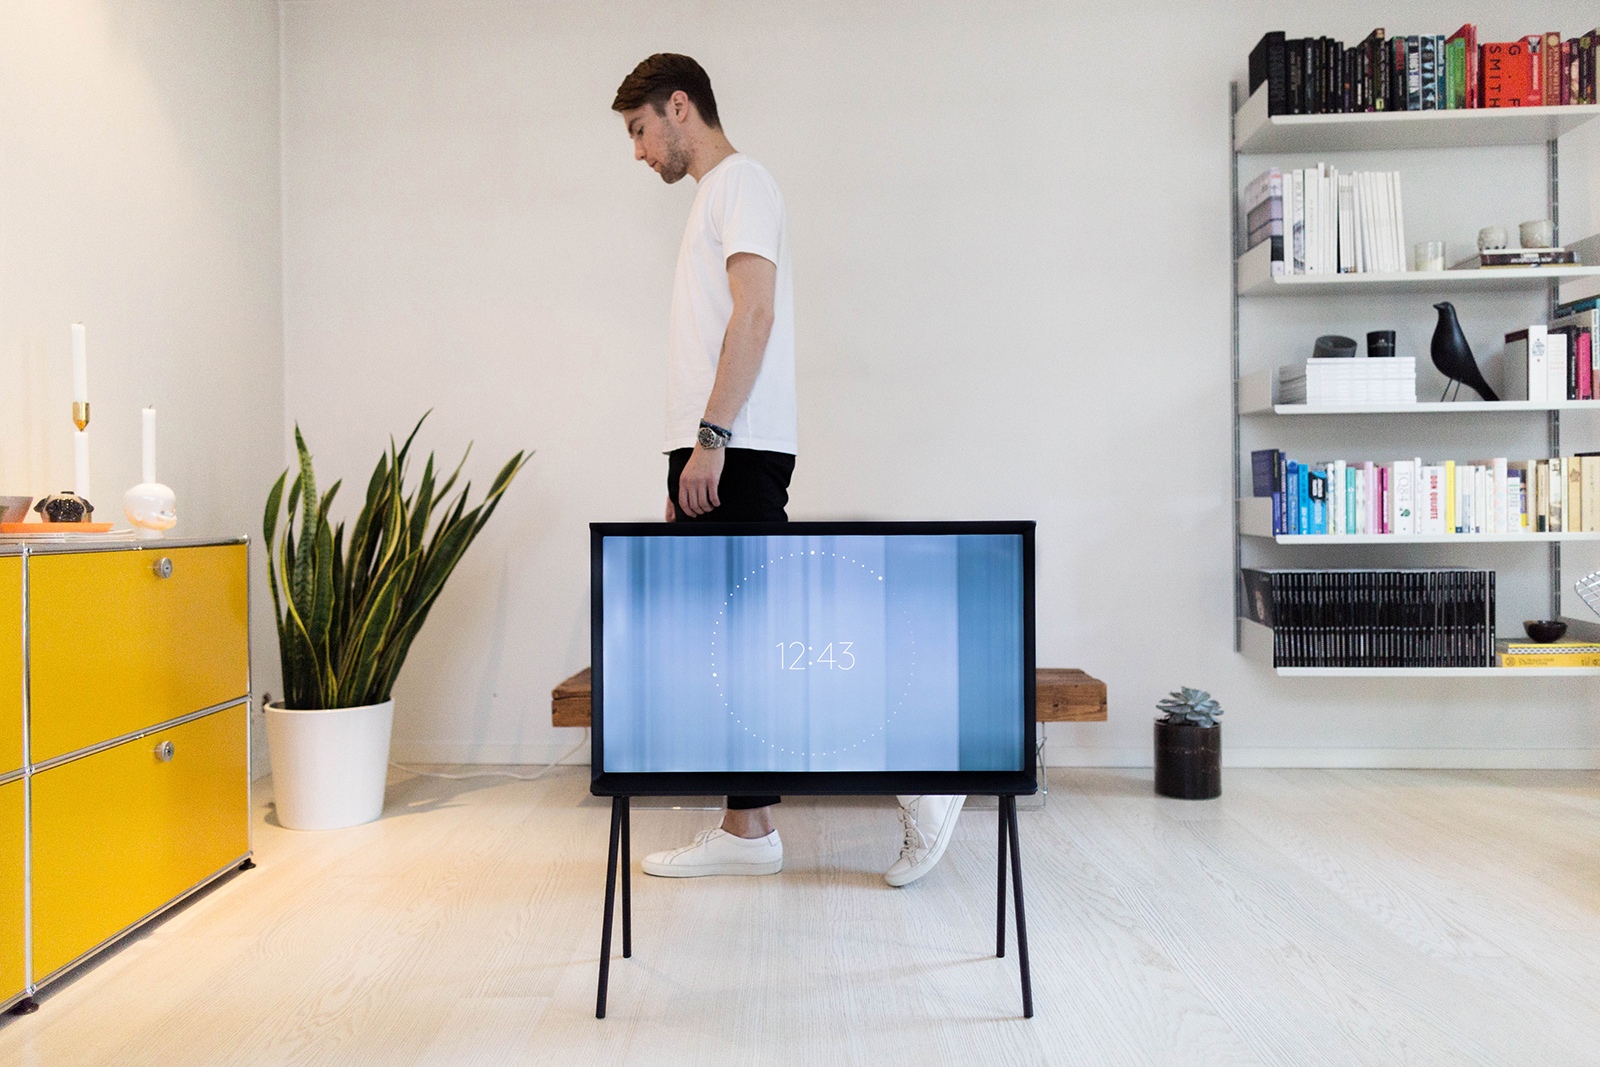 fredrik risvik speaks on design and the samsung serif tv hypebeast. Black Bedroom Furniture Sets. Home Design Ideas